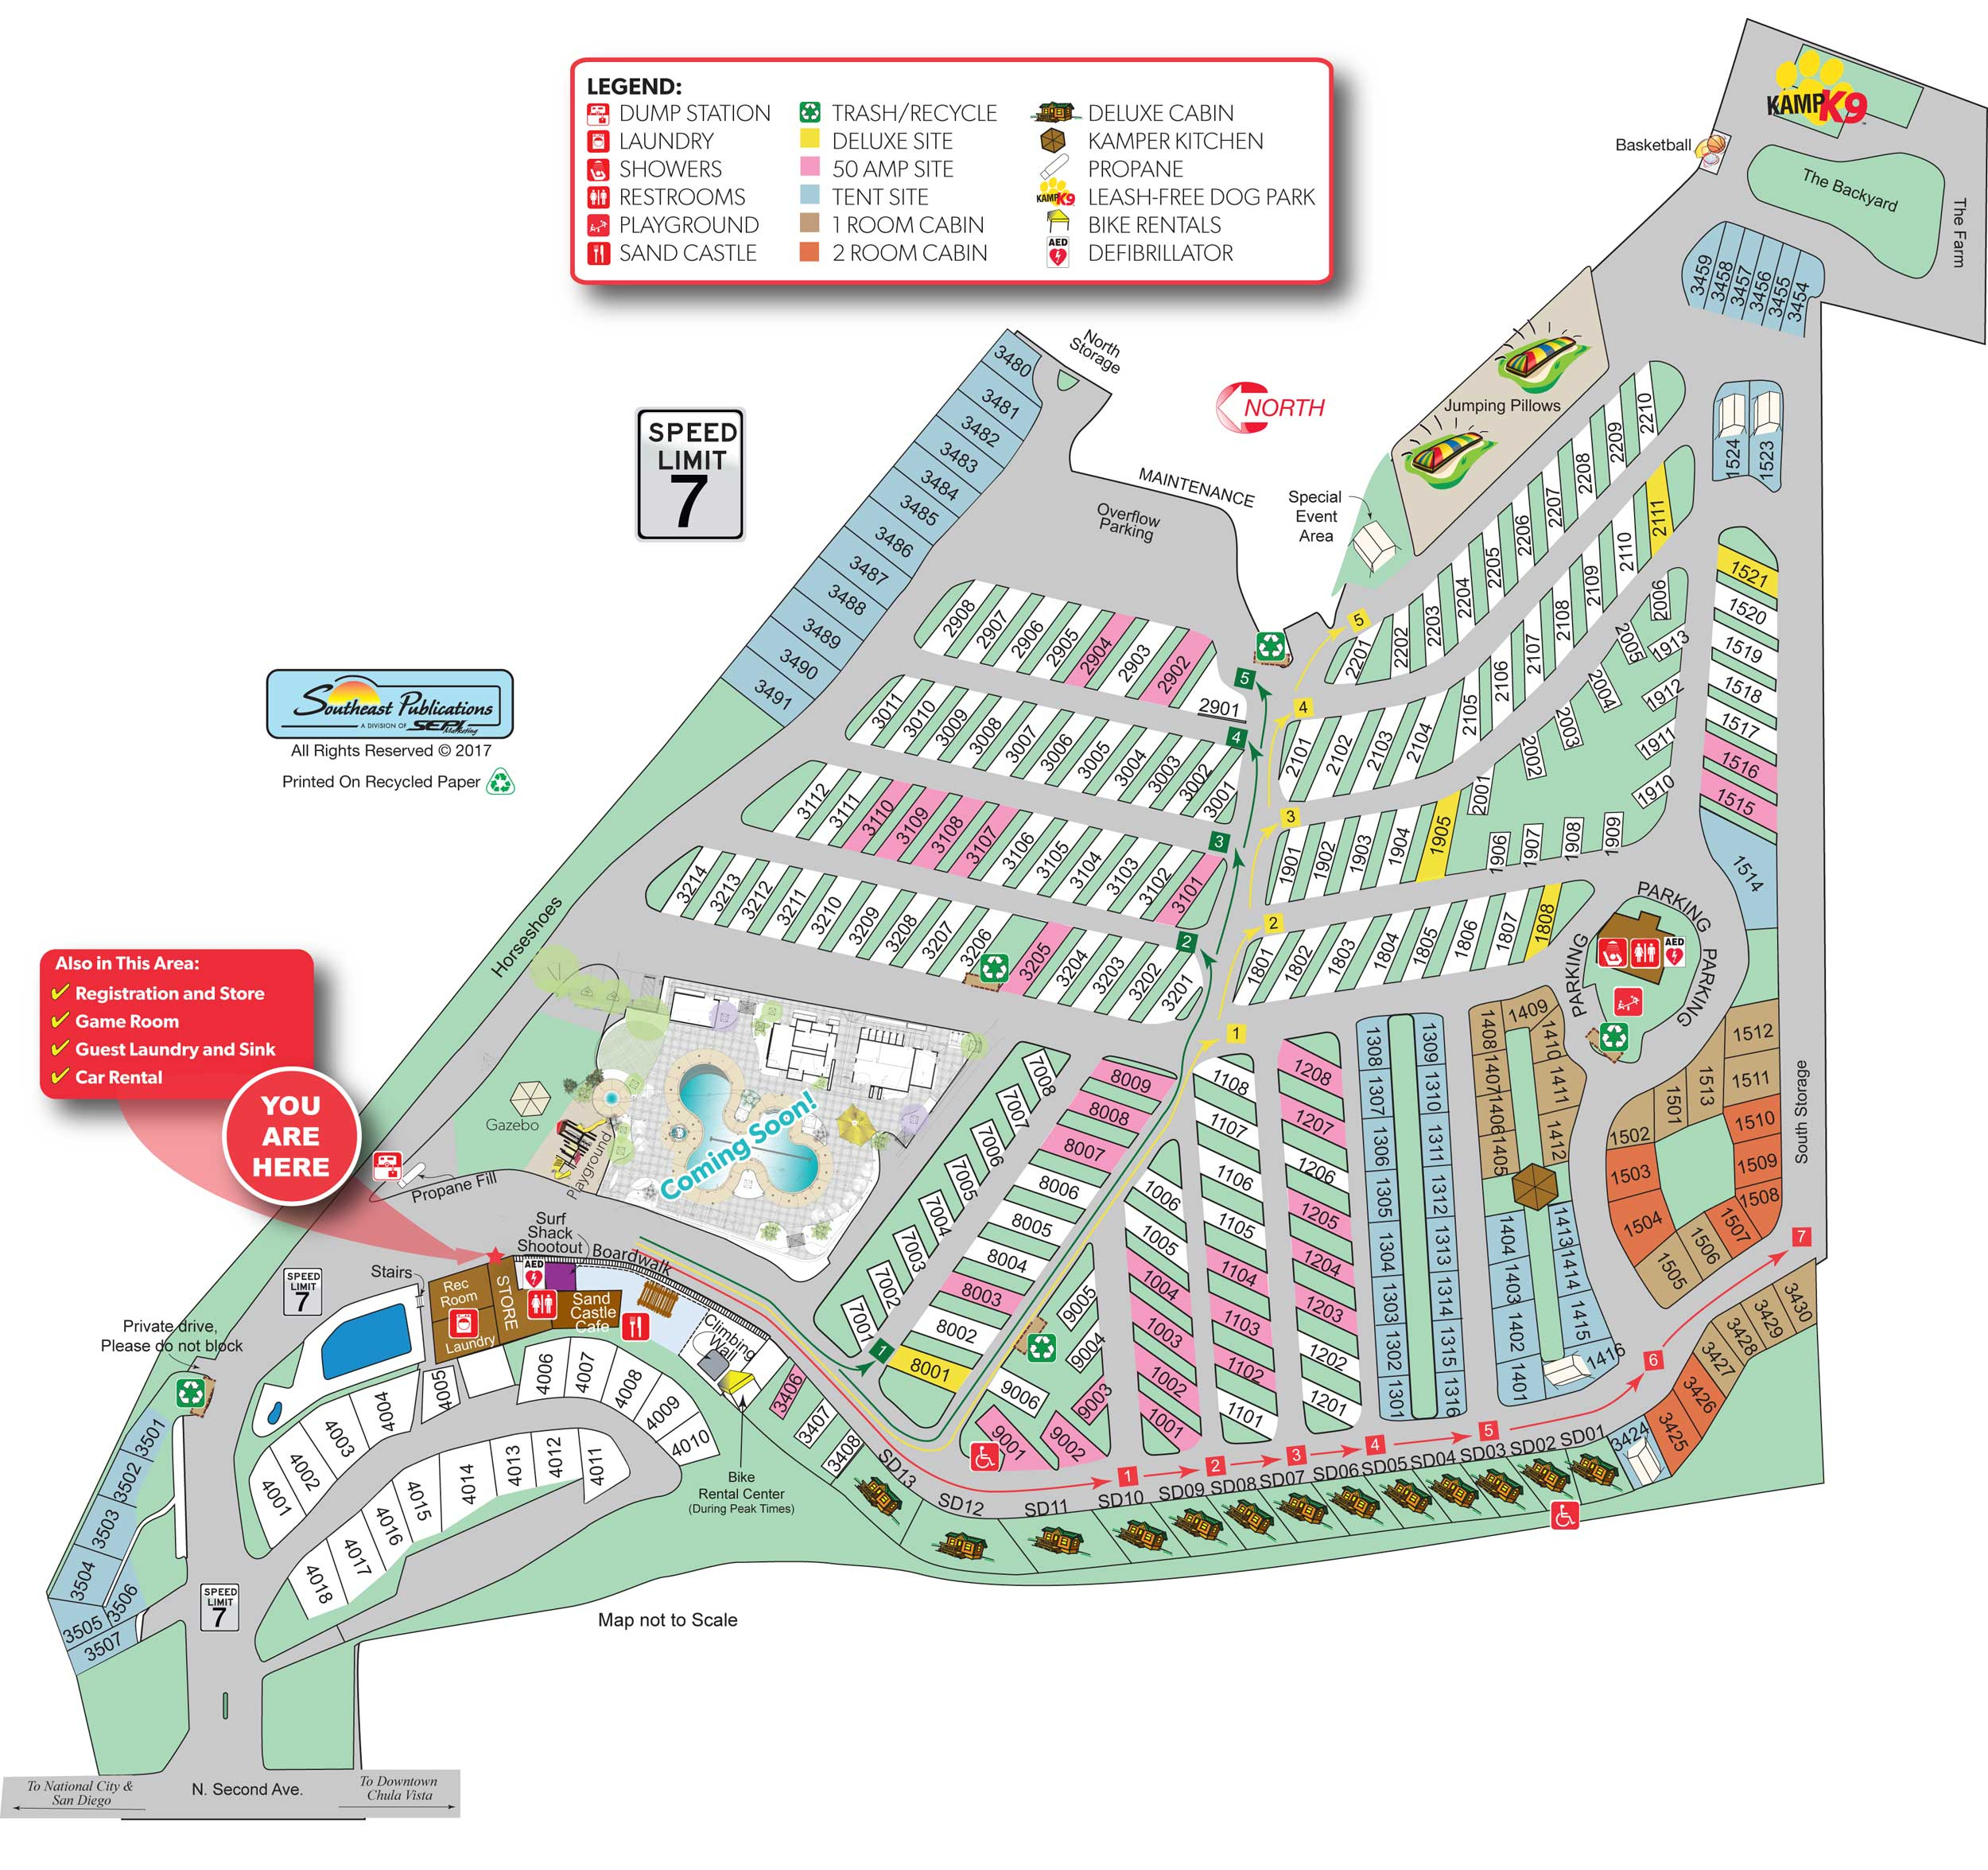 Chula Vista, California Campground | San Diego Metro Koa - California Camping Map